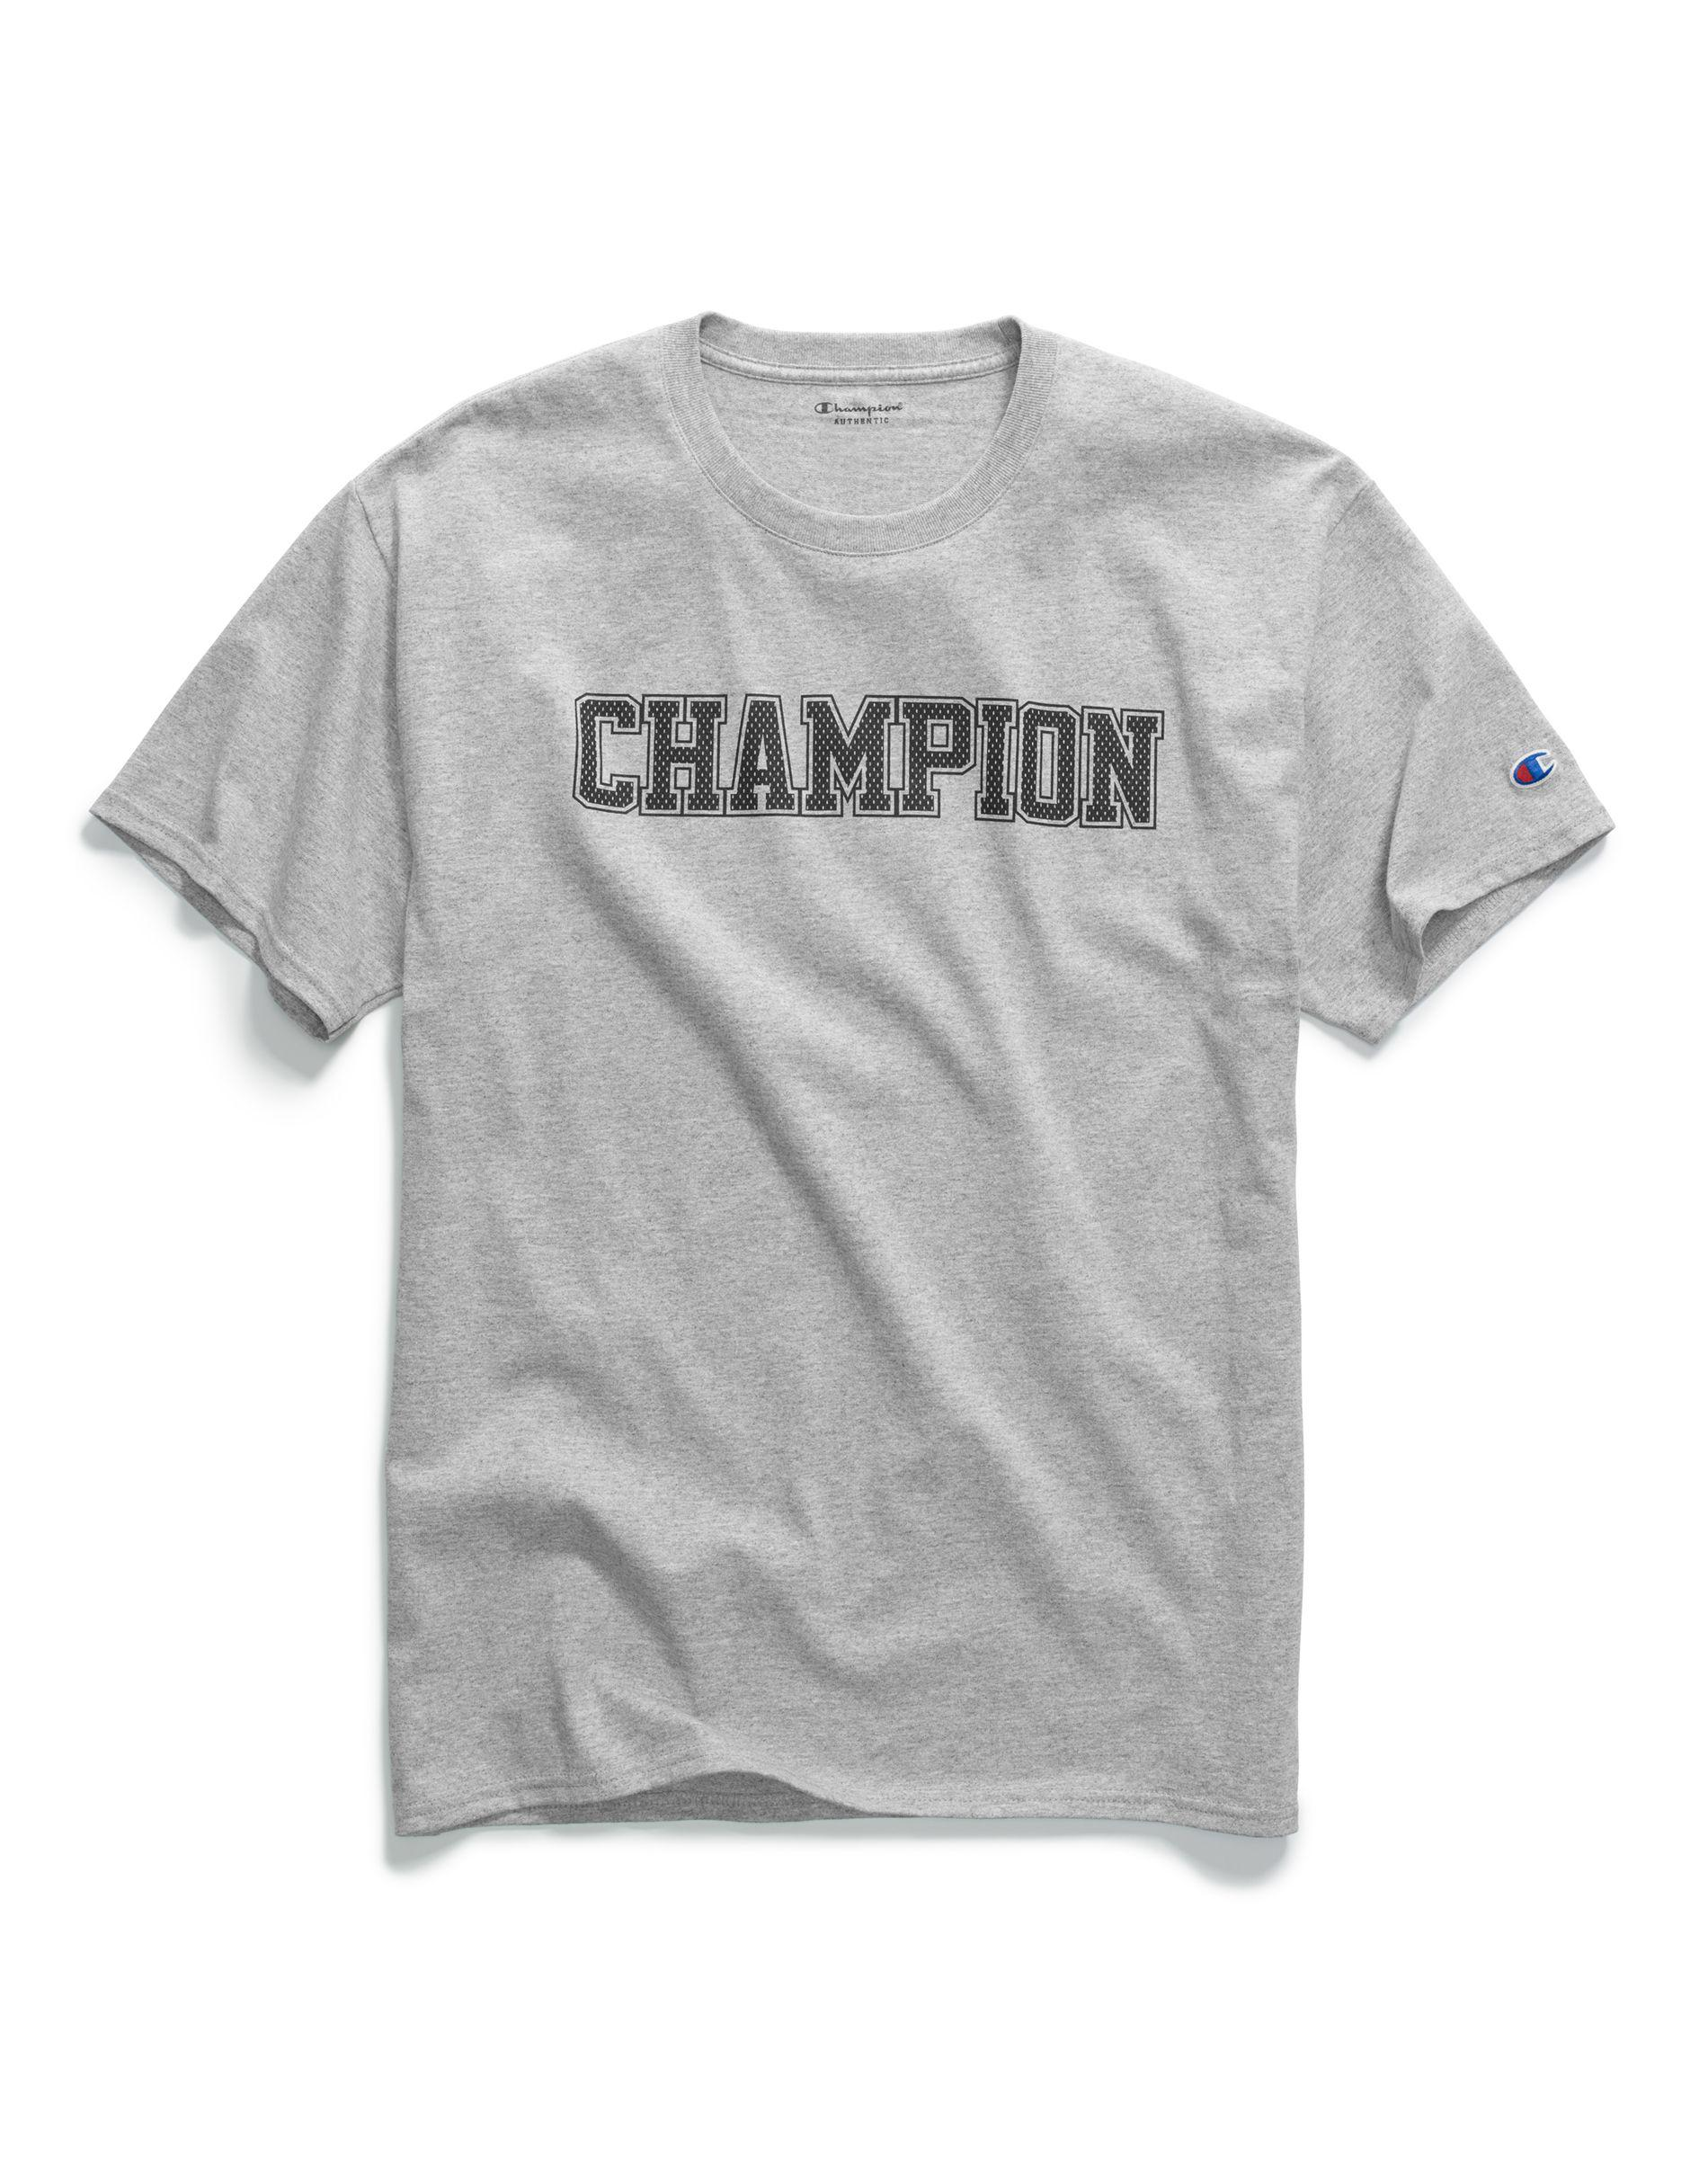 cc60eac67e82 Lyst - Champion Graphic Jersey Tee